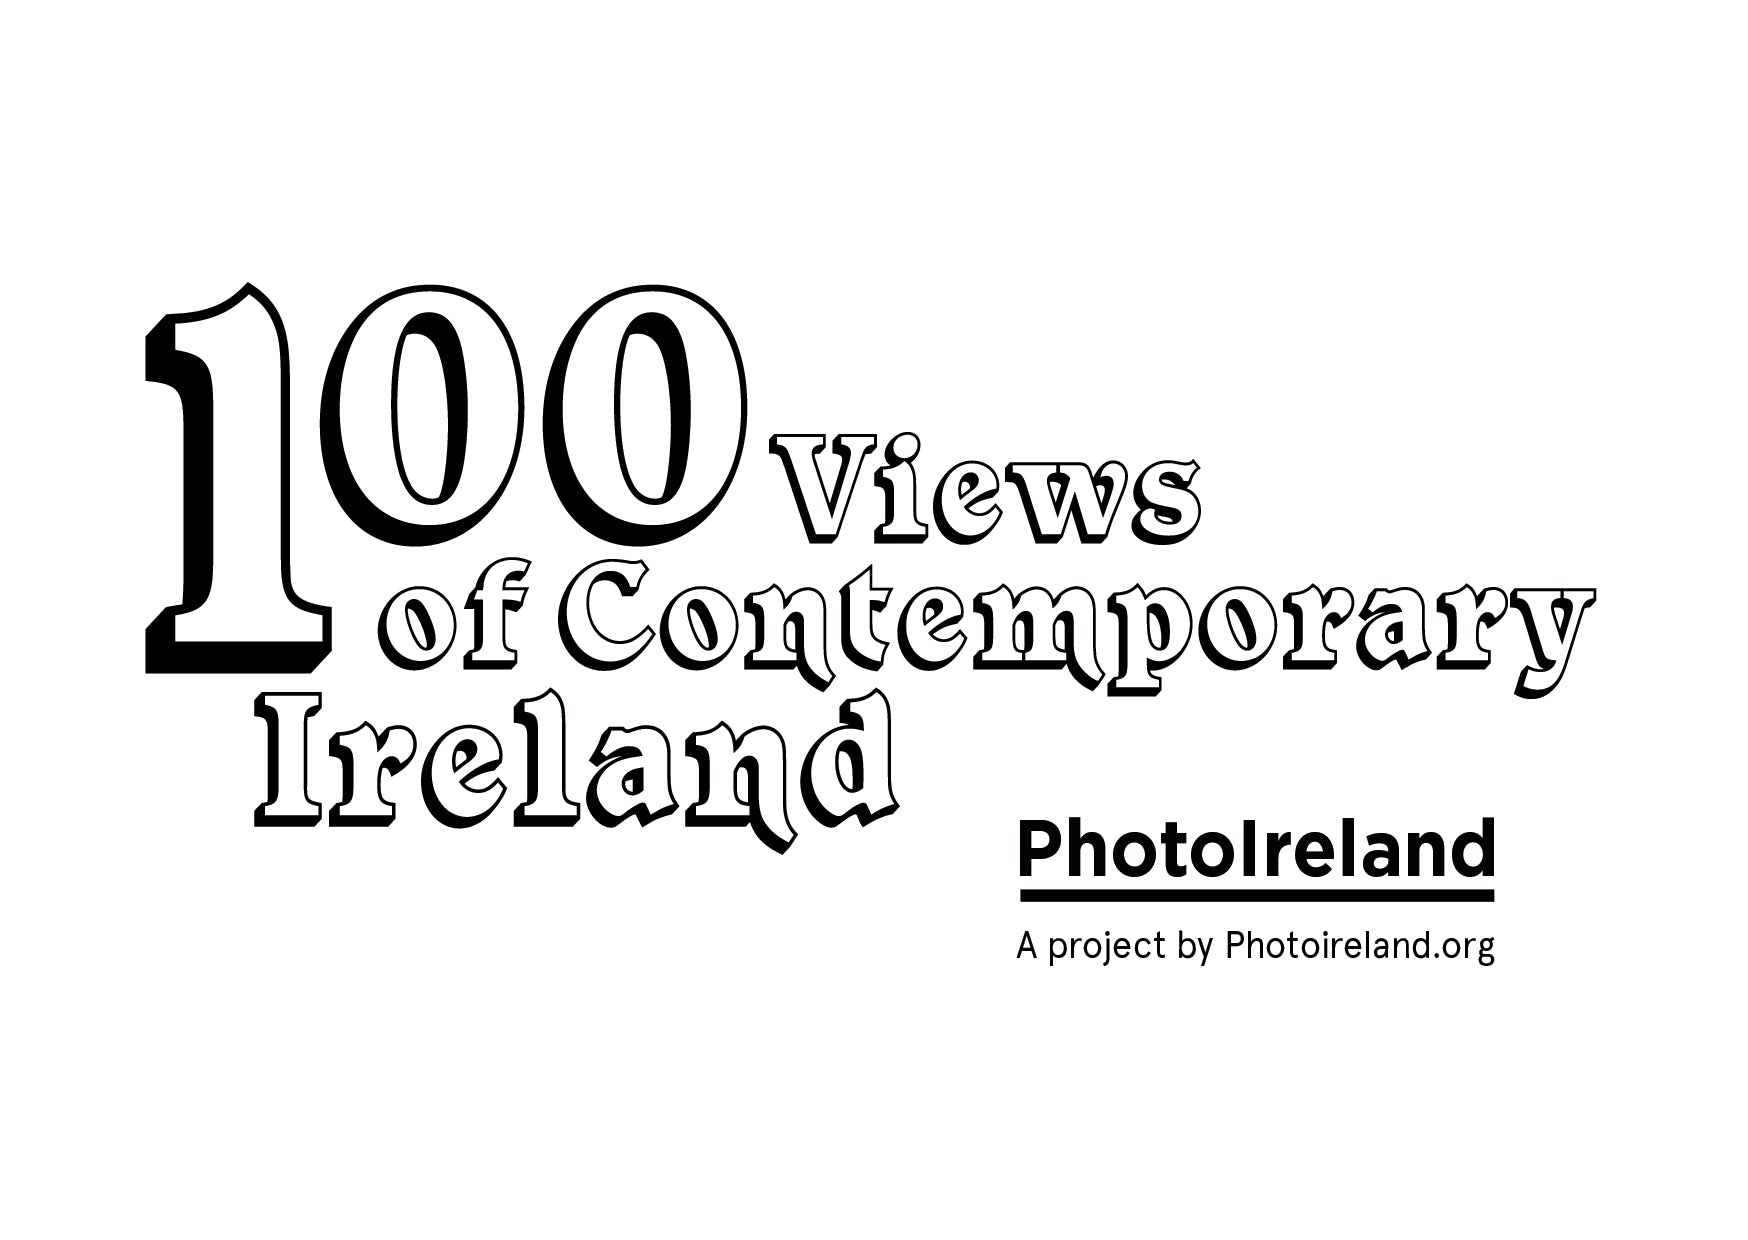 Brian Cooney, 100 Views of Contemporary Ireland